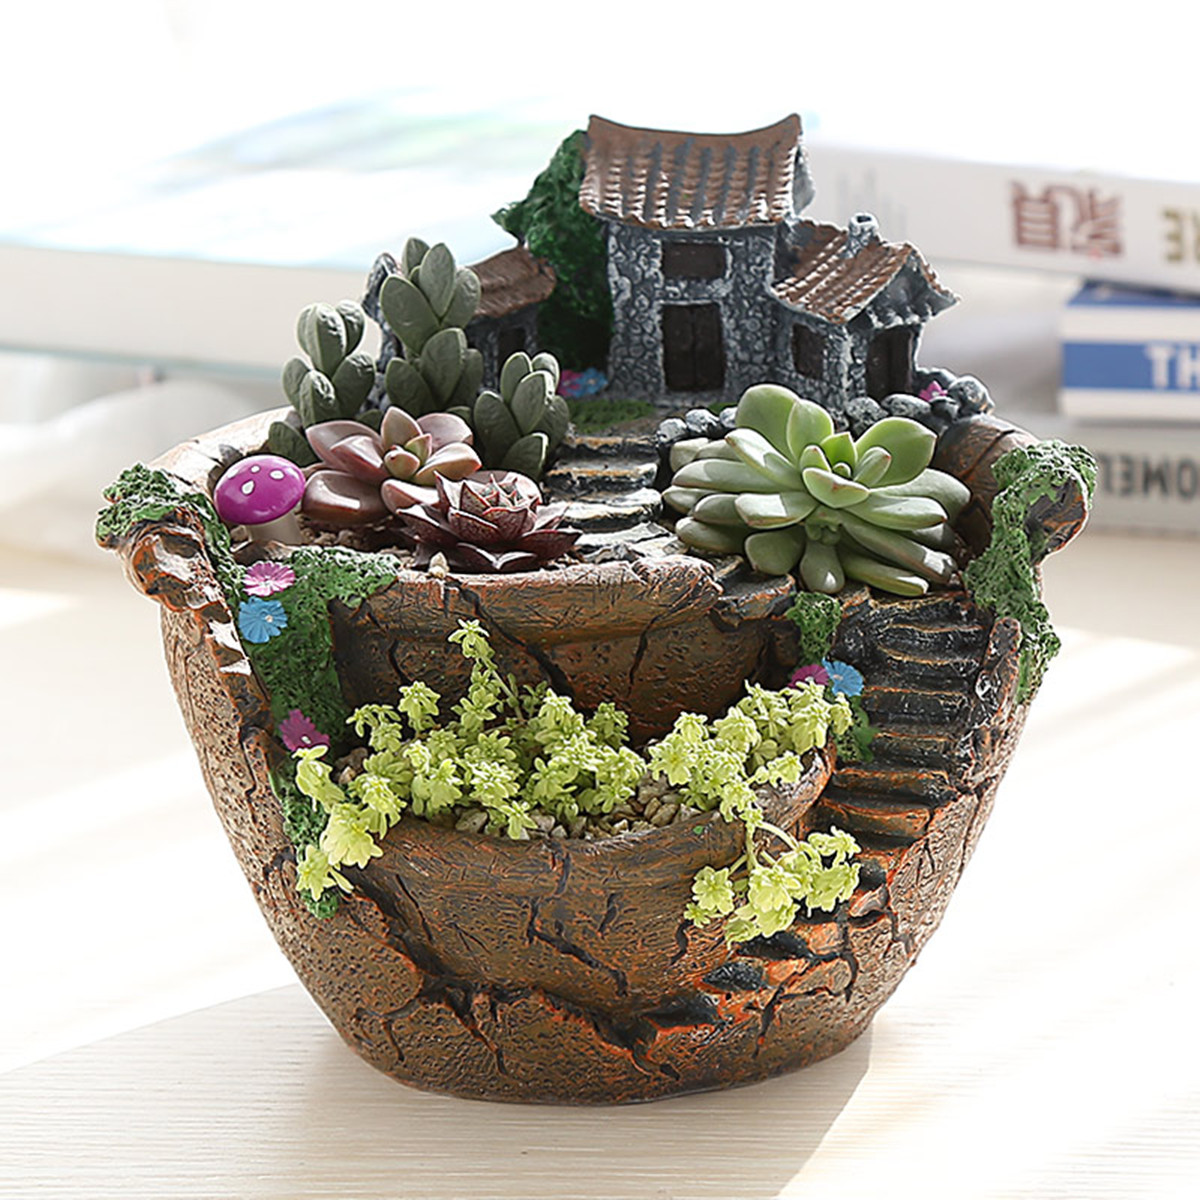 Herb Planter Pot Sky Garden Planter Herb Flower Cactus Succulent Clay Pot